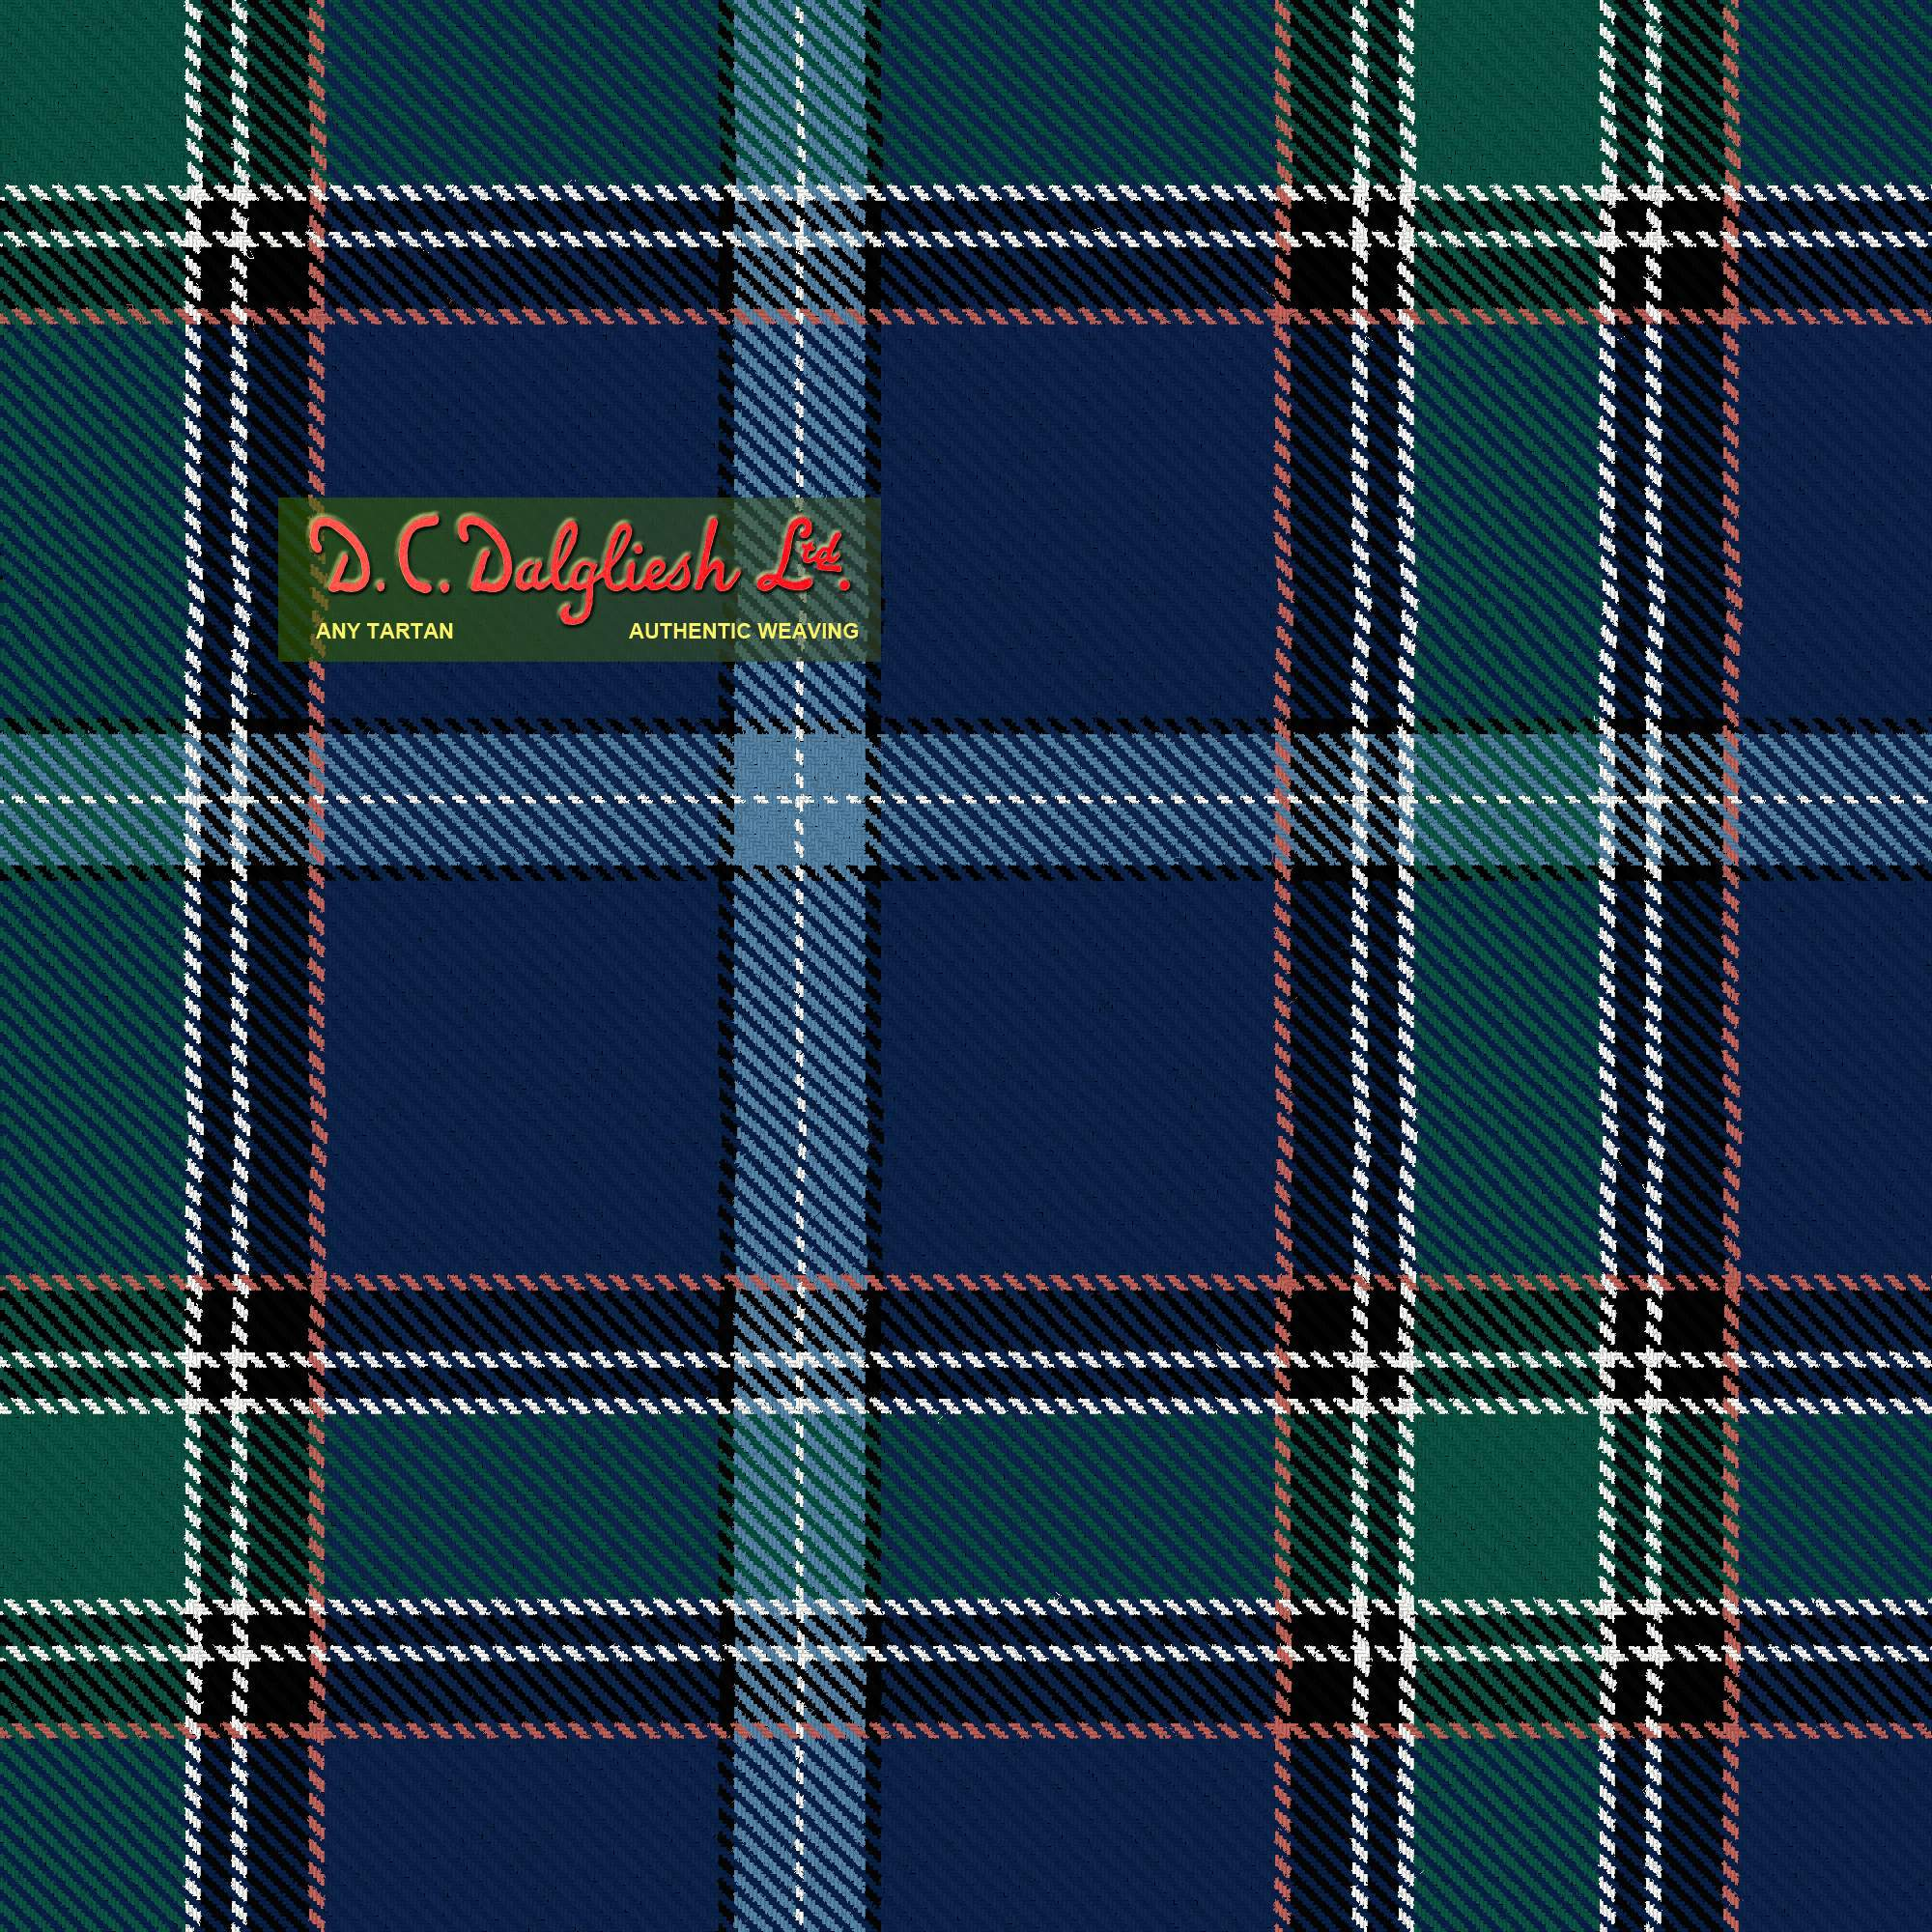 victoria state australia fabric by dc dalgliesh hand crafted tartans. Black Bedroom Furniture Sets. Home Design Ideas